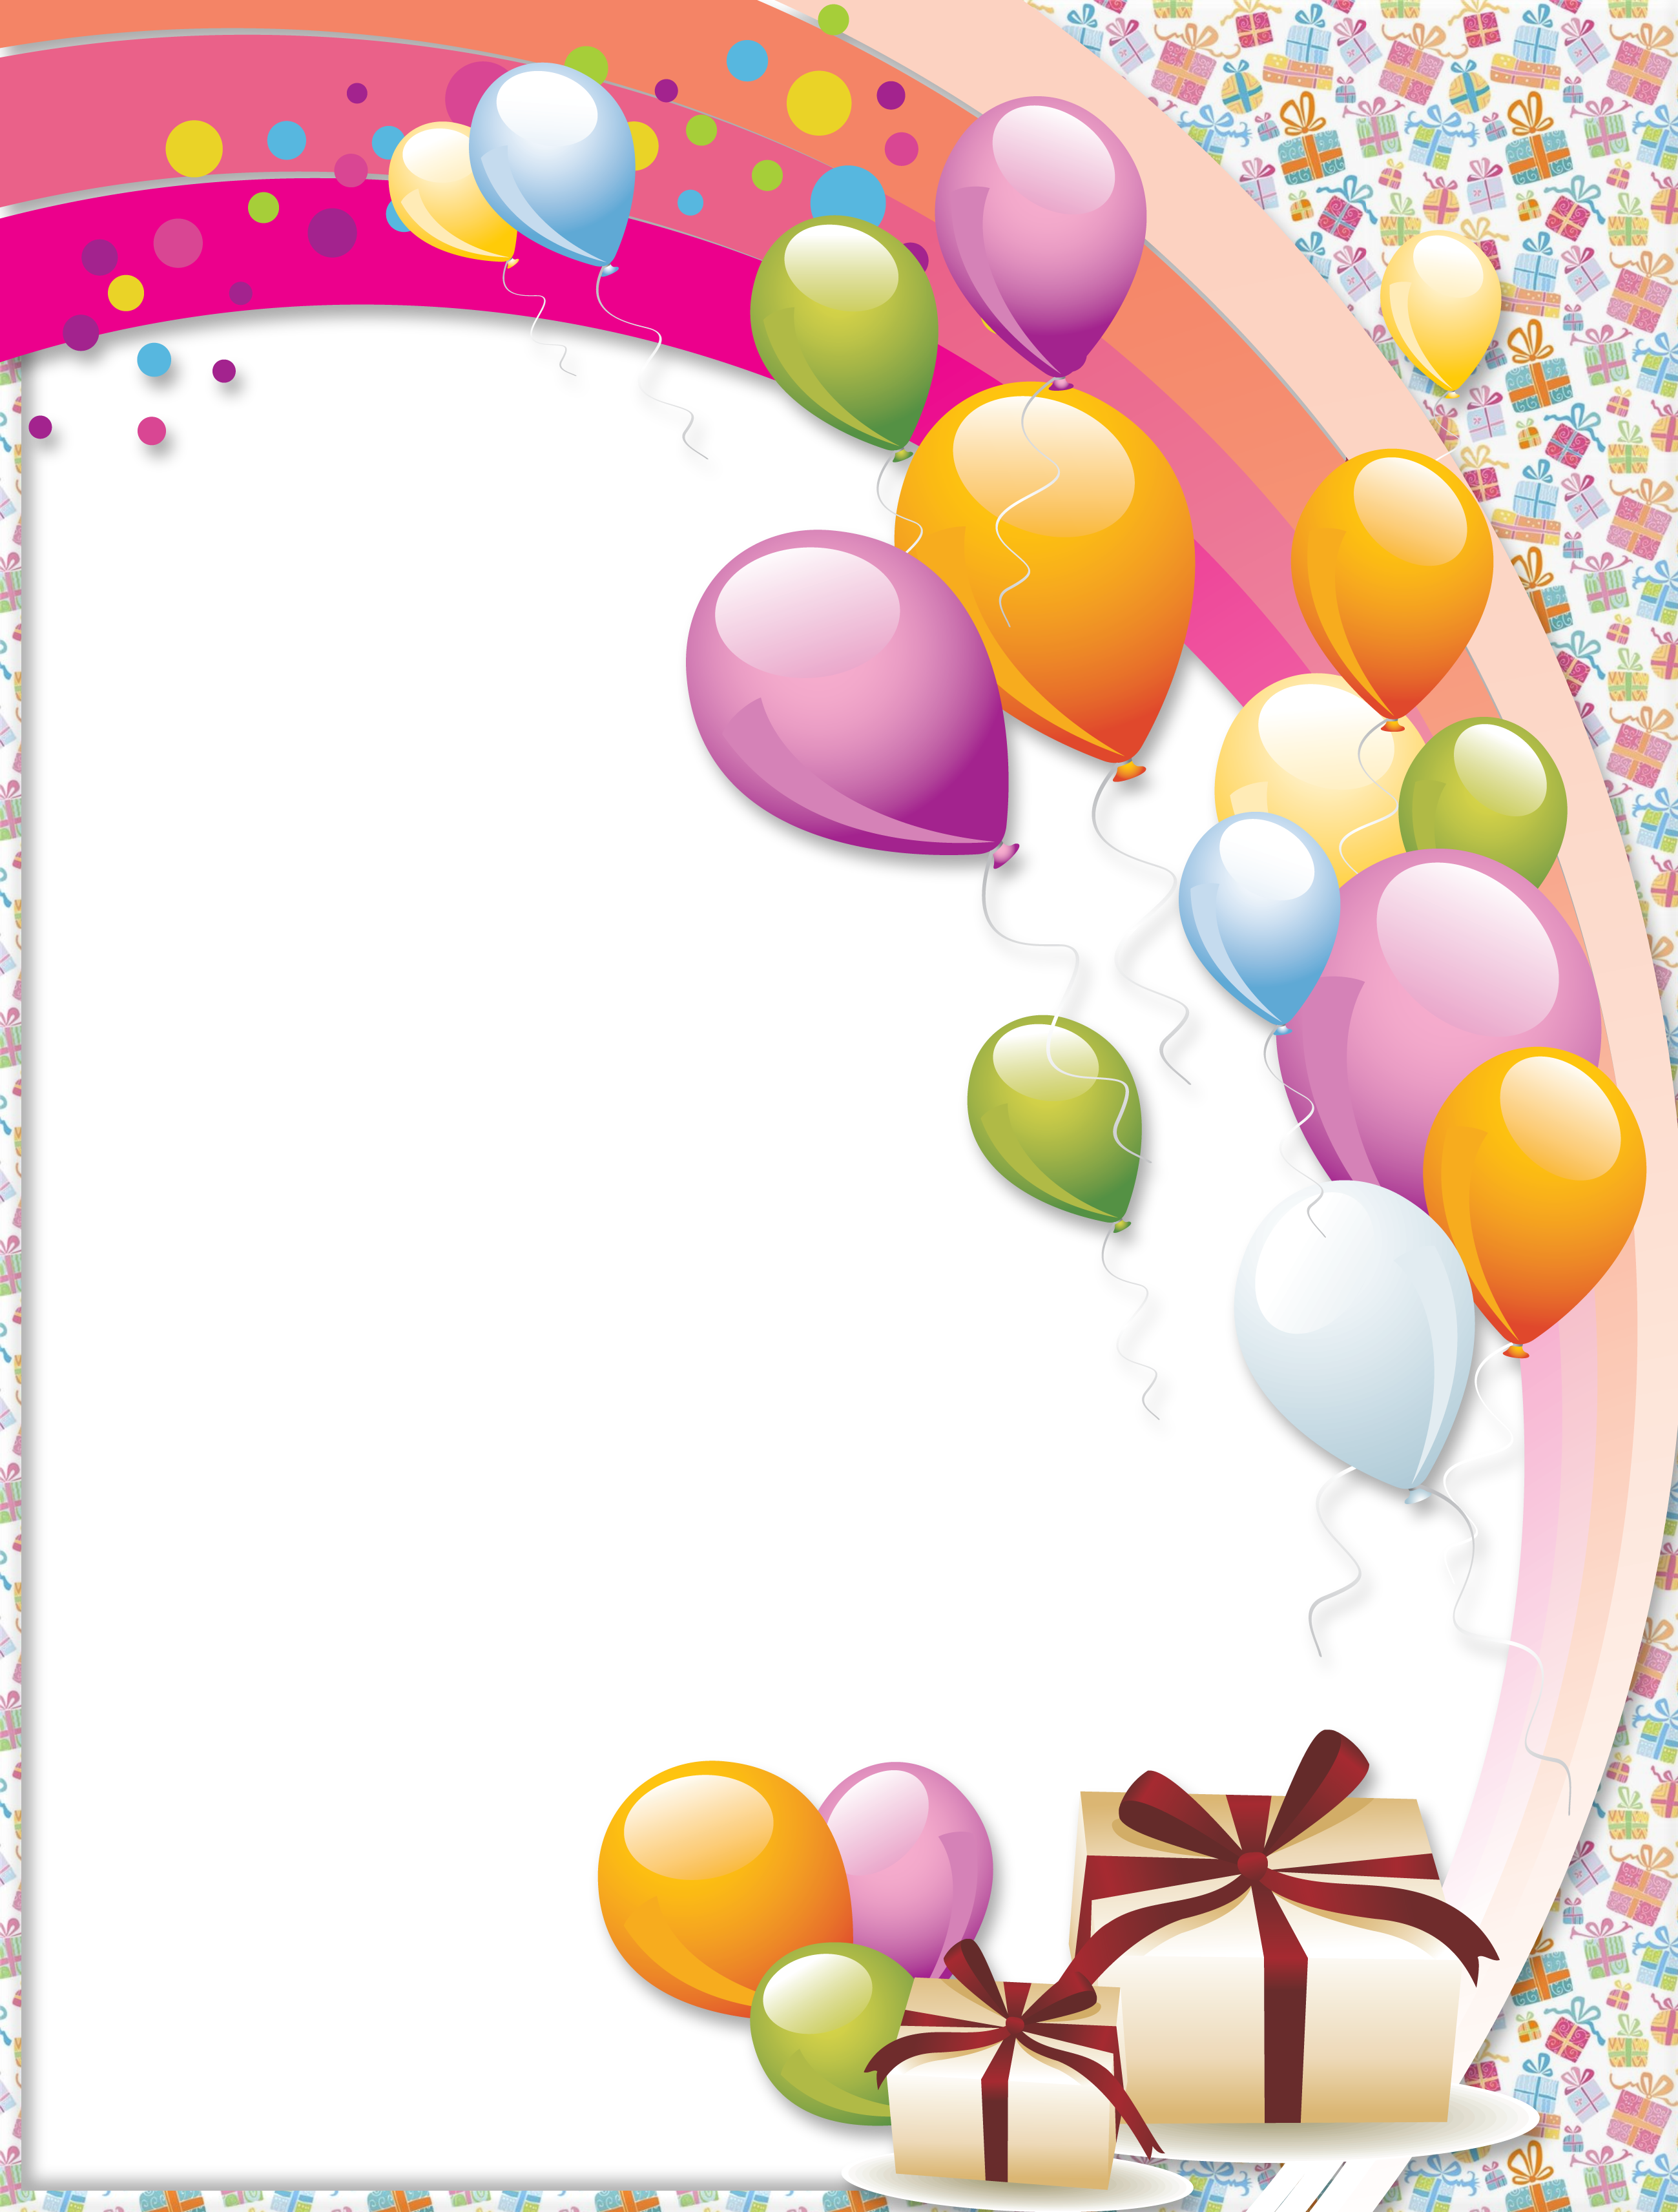 Transparent Birthday Frame | Gallery Yopriceville - High-Quality ...